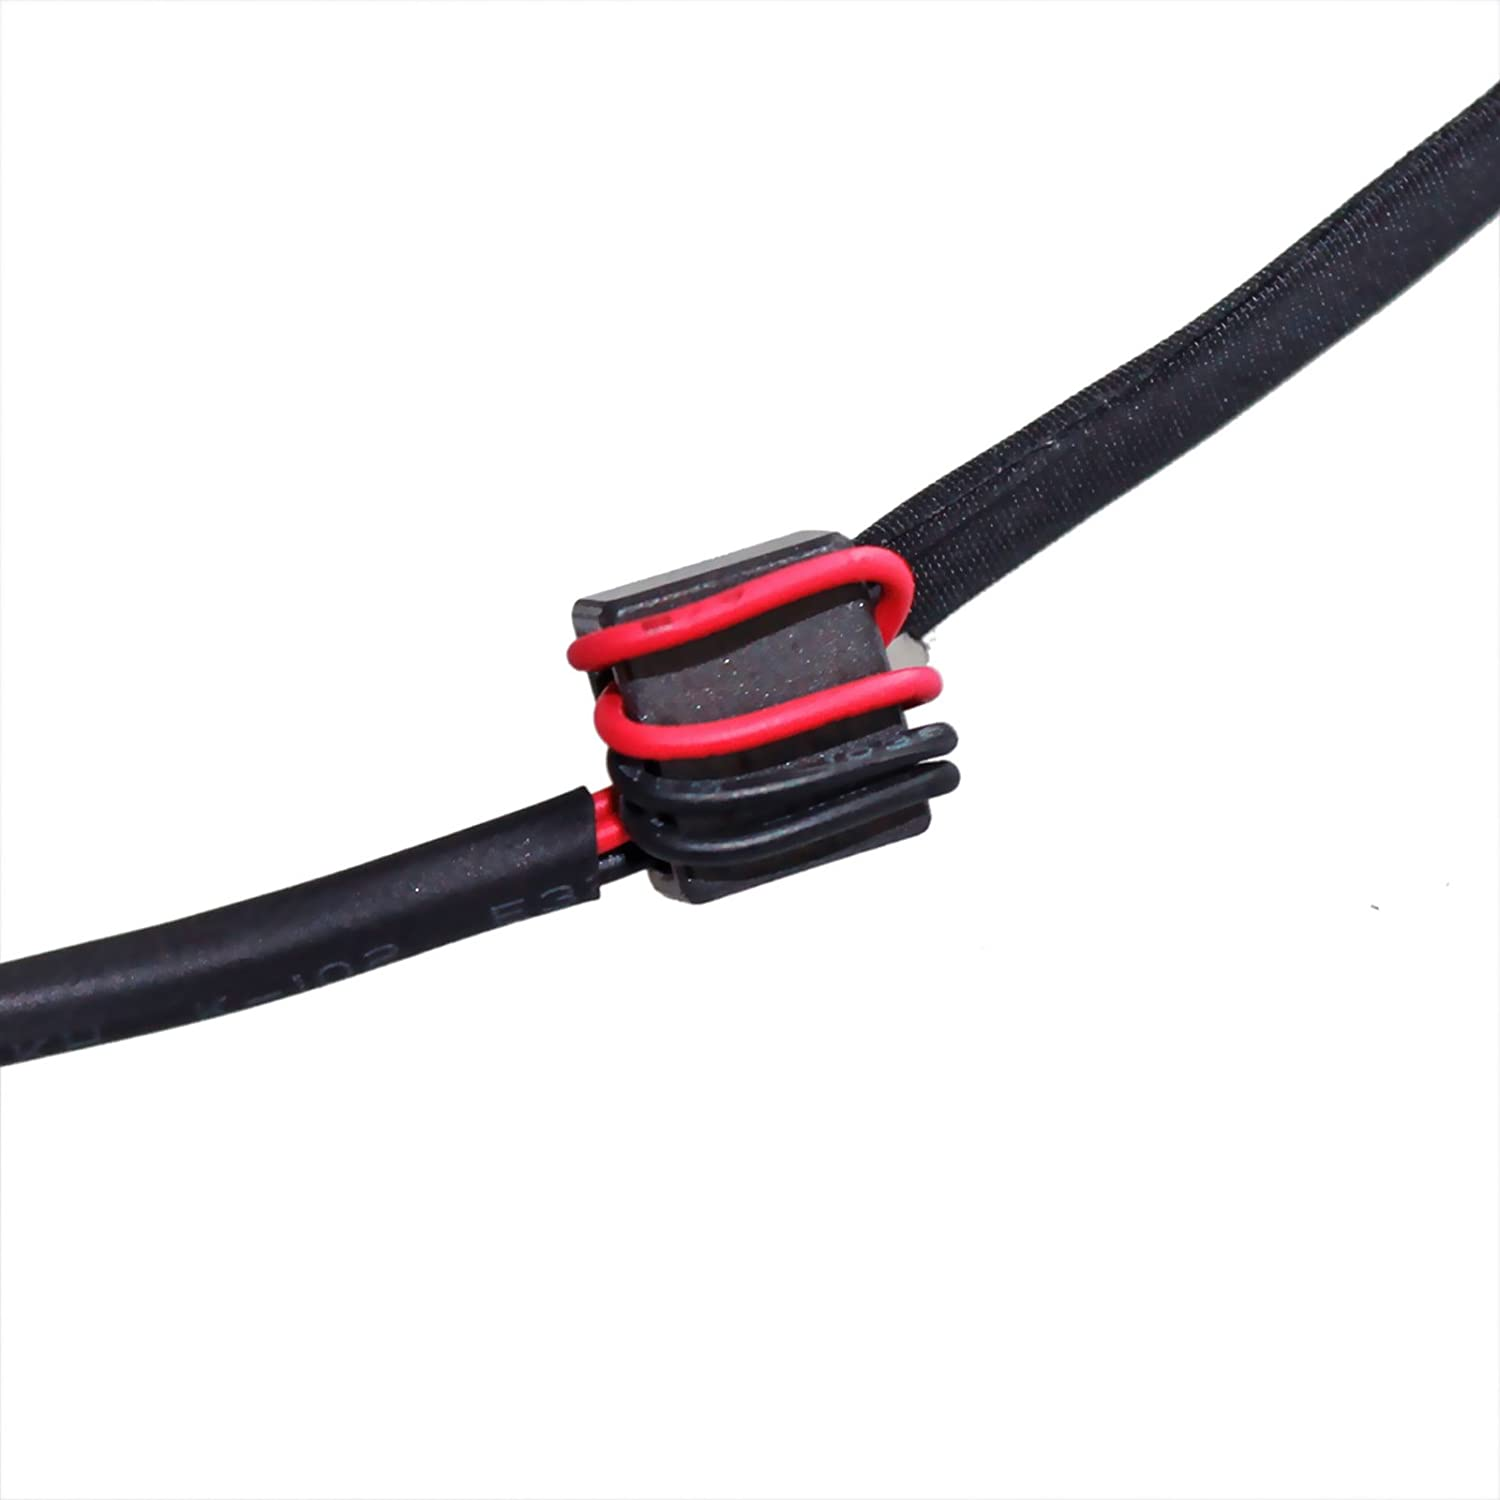 GinTai DC Power Jack Cable Replacement for Toshiba Satellite P870 P870D P875 P875D 6017B0357701 10pcs